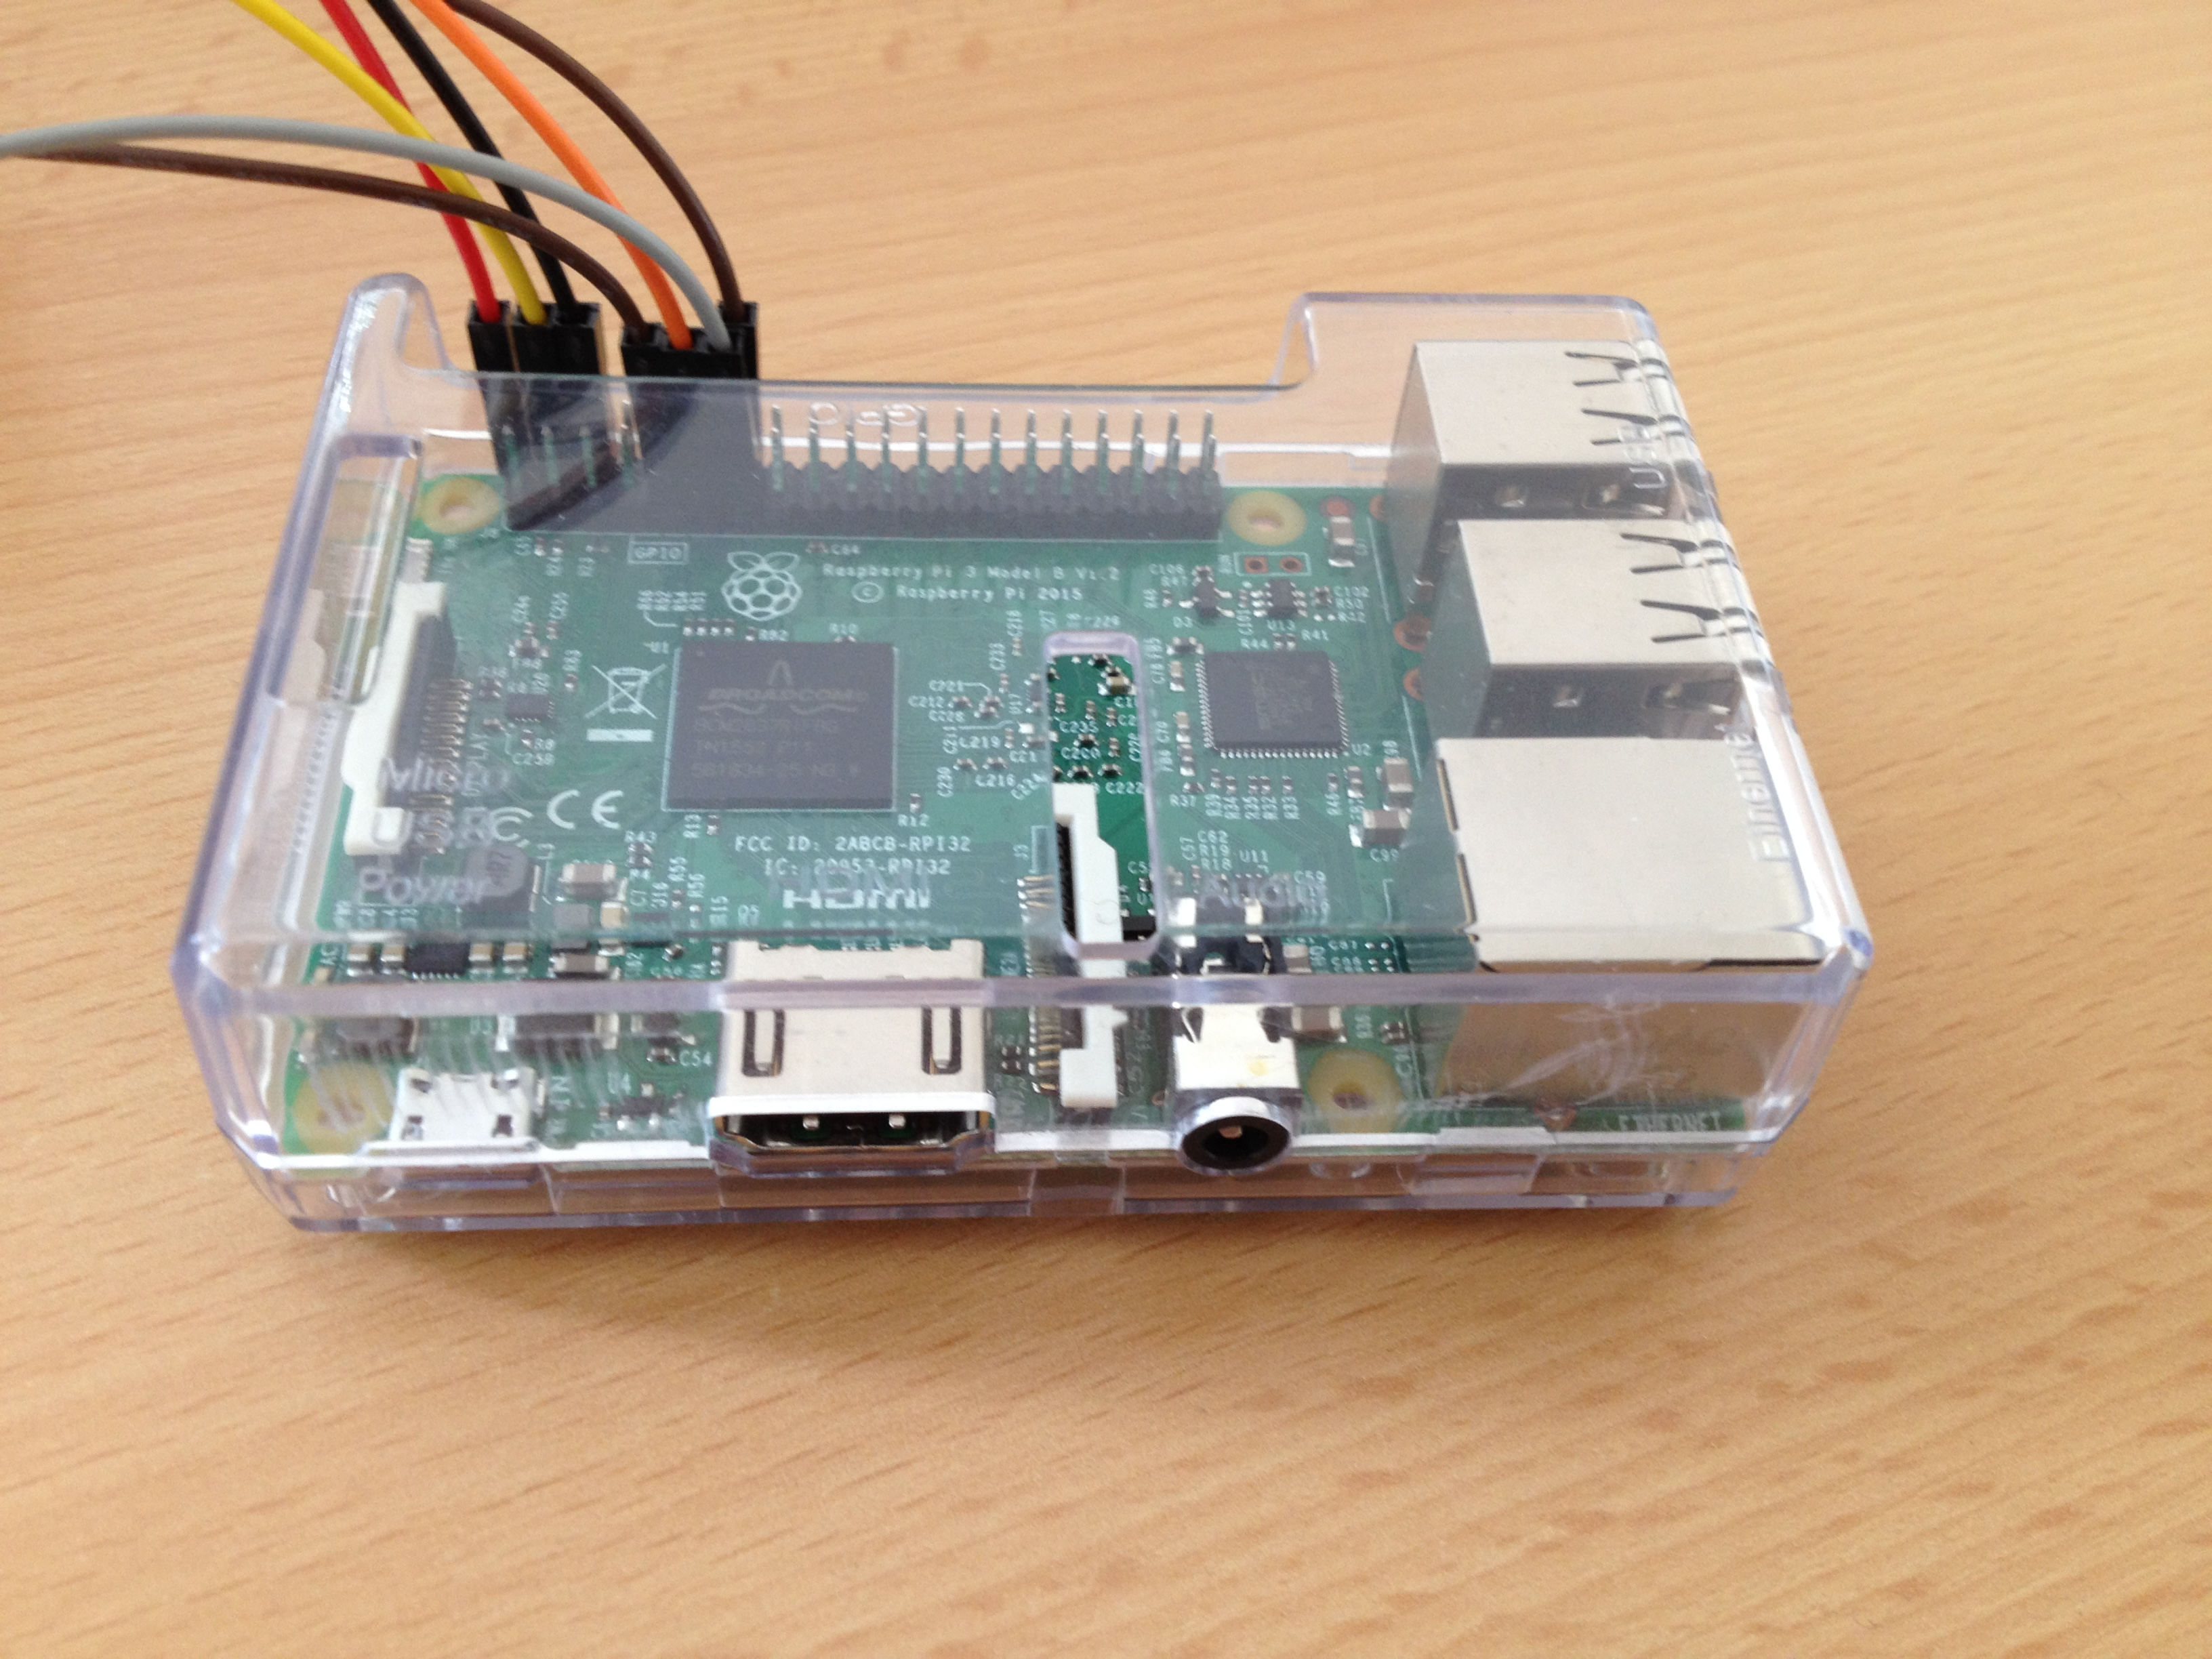 IoT with MQTT, Raspberry Pi and a cheap Remote Control